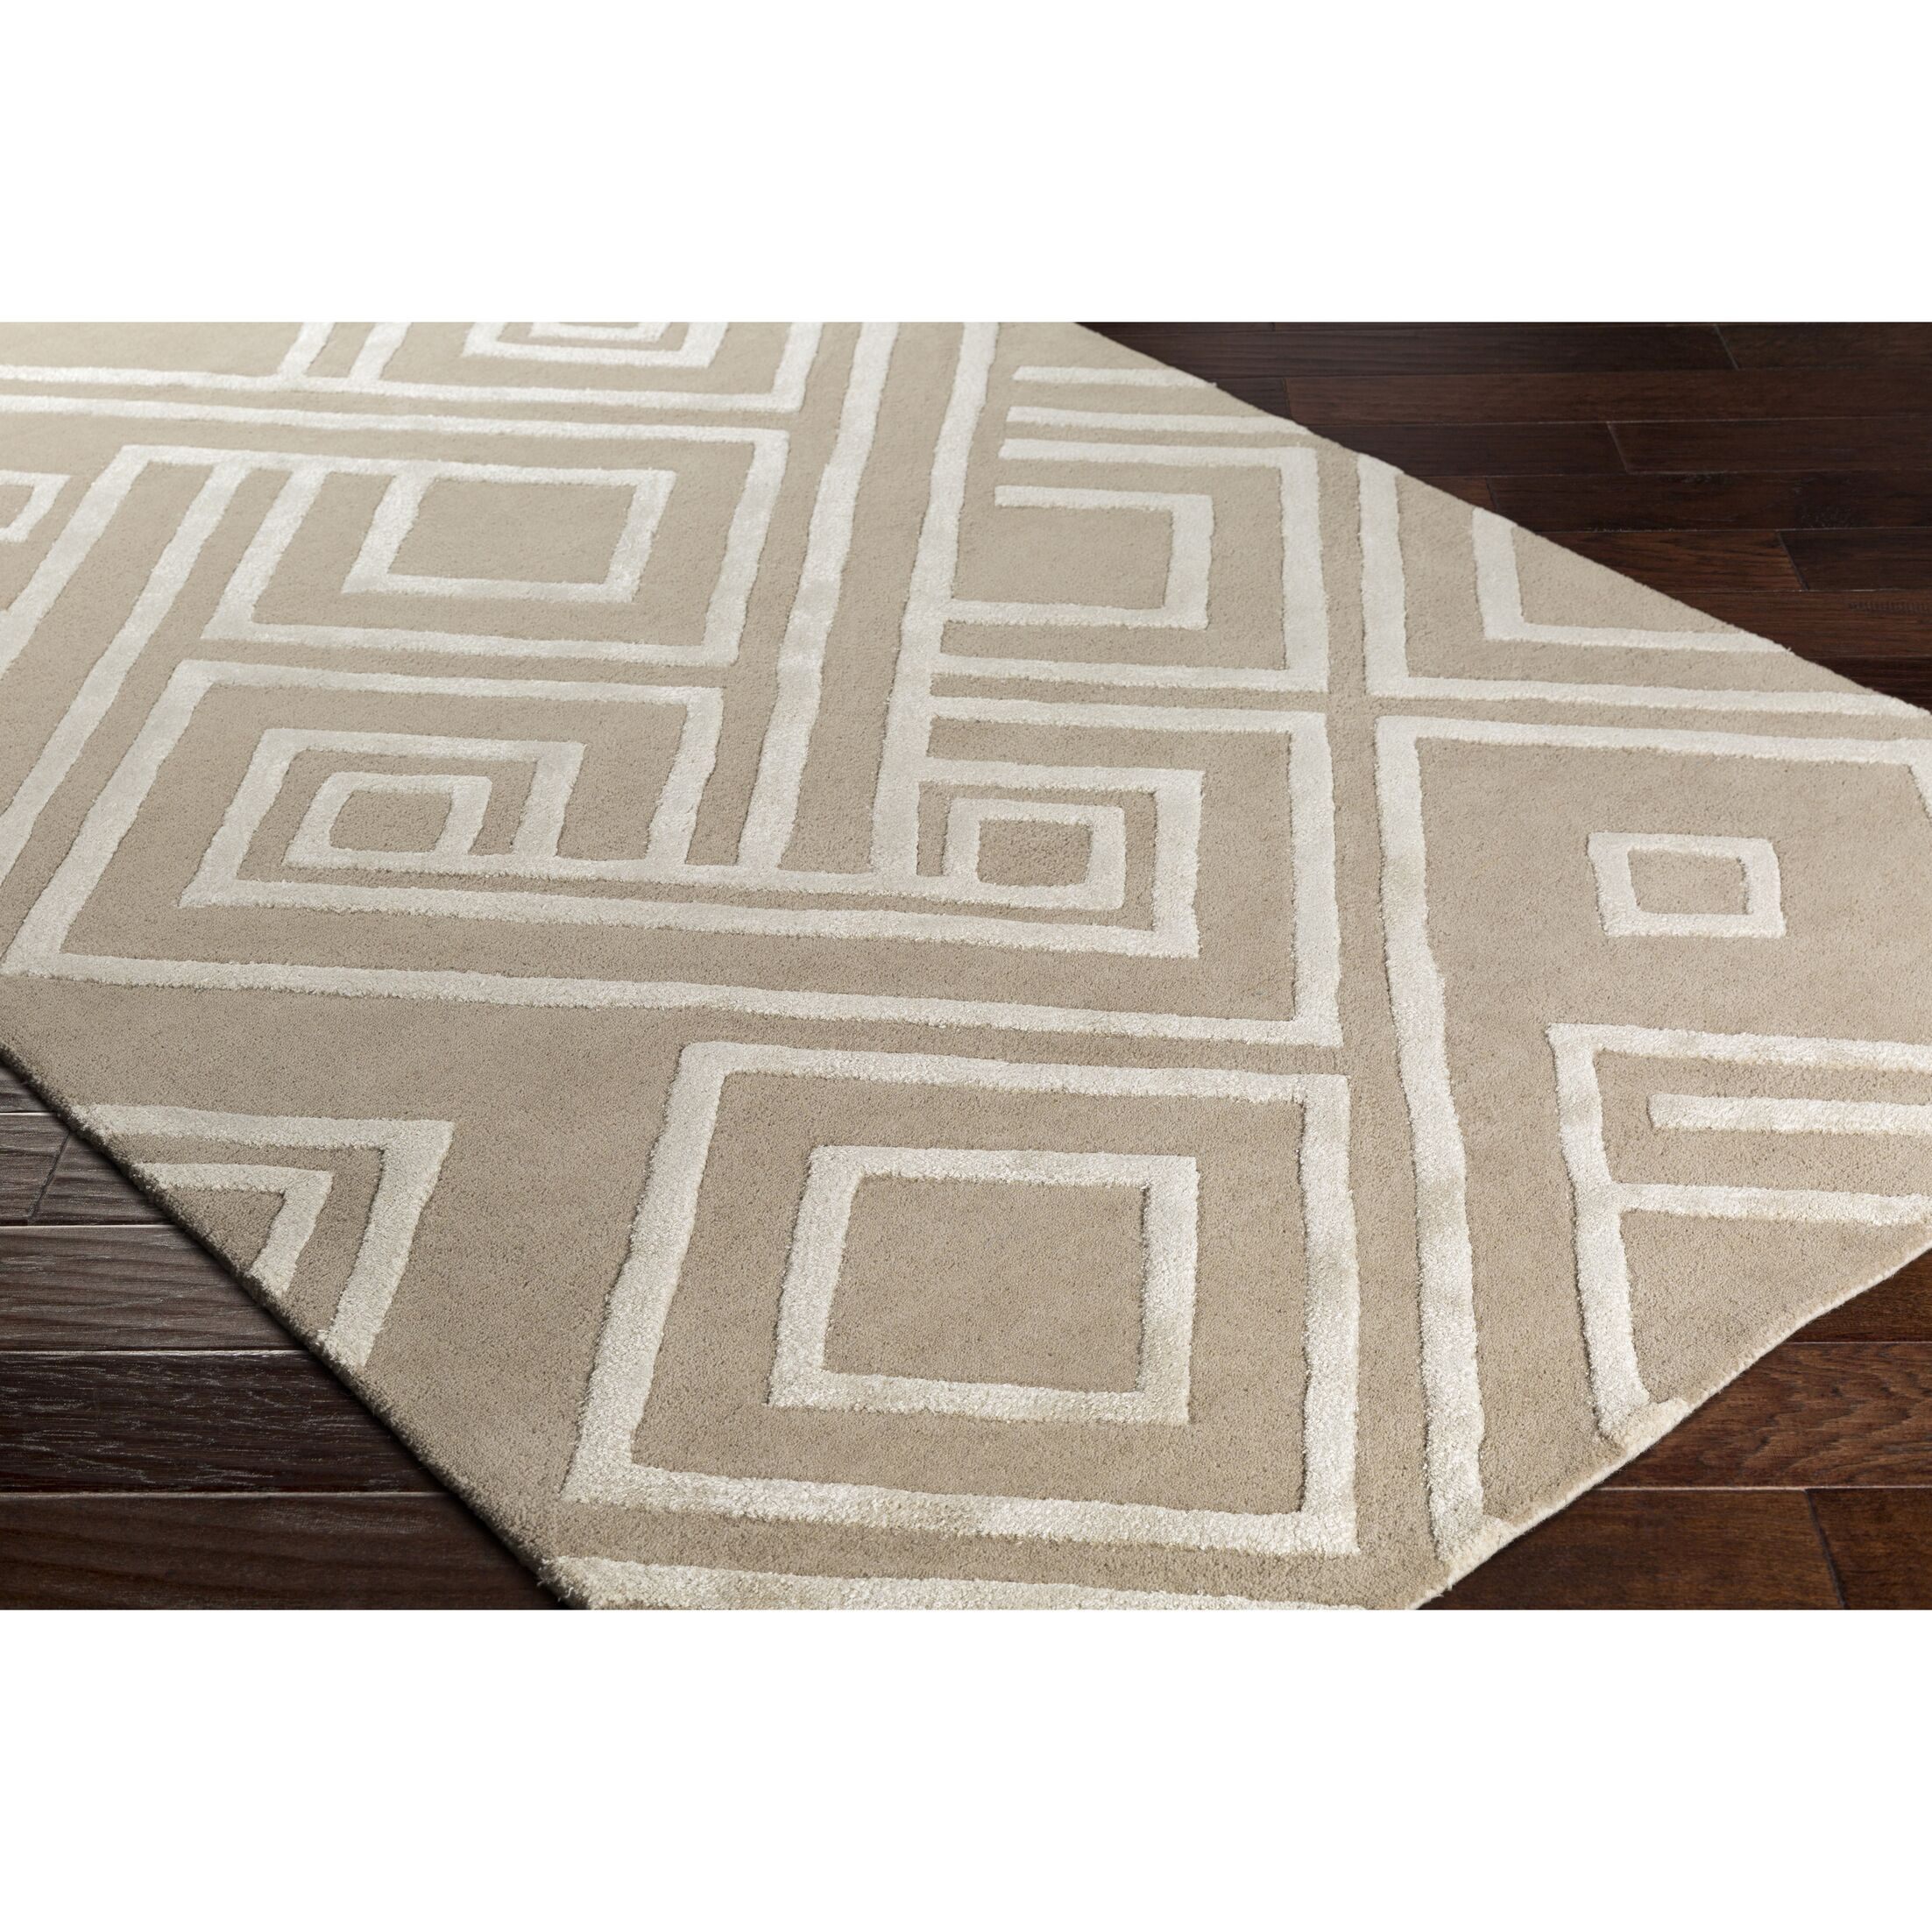 Vazquez Hand-Tufted Neutral Area Rug Rug Size: Rectangle 5' x 7'6